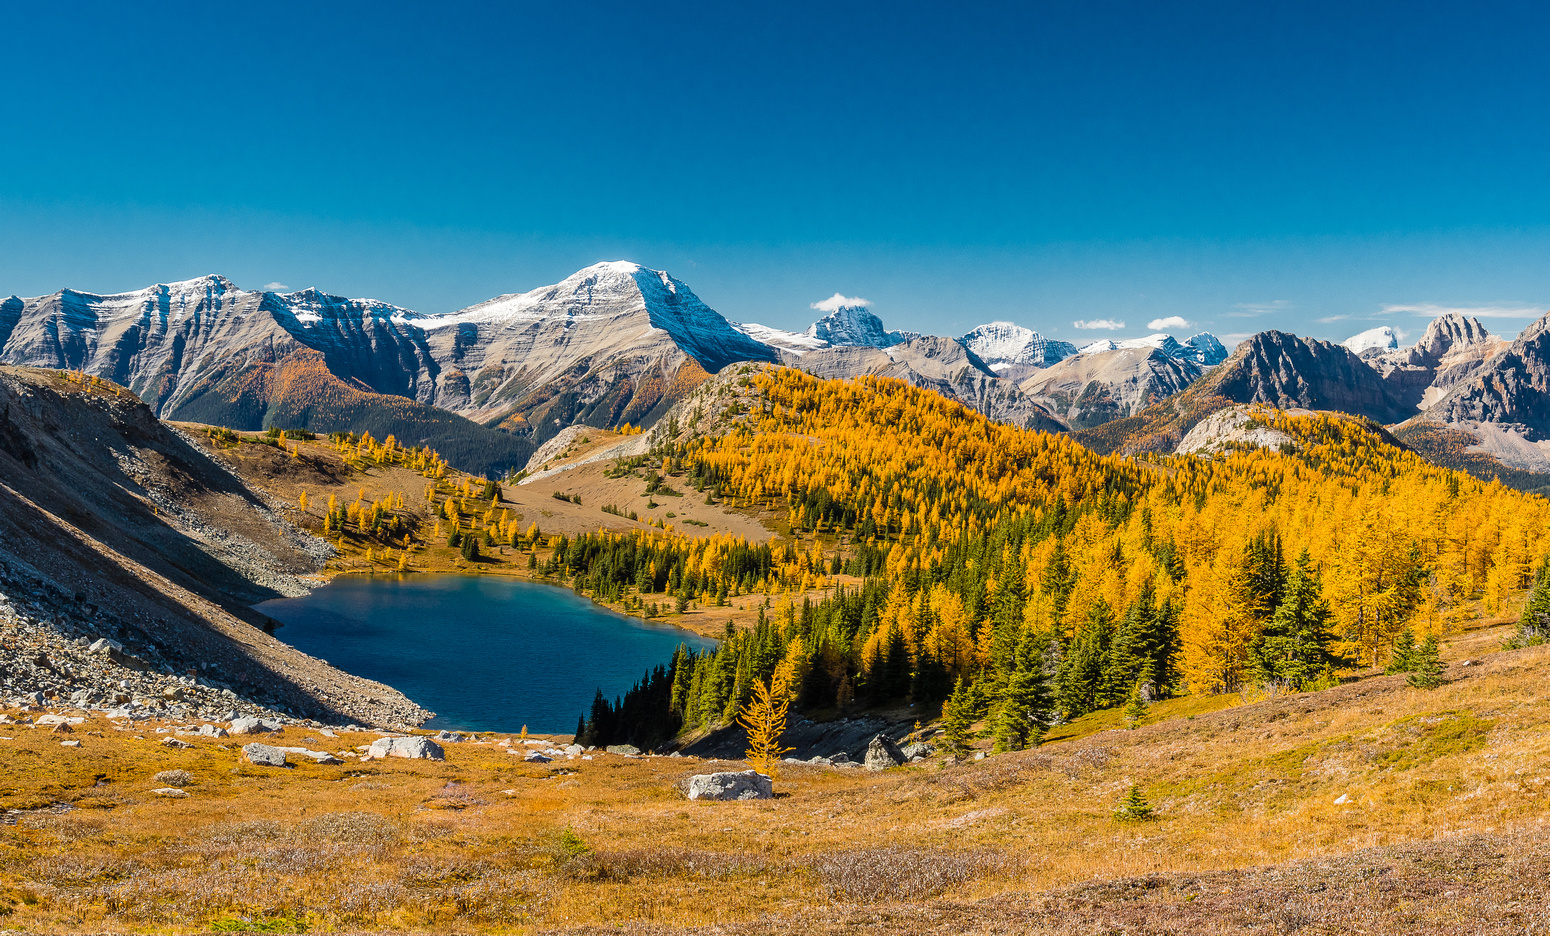 From near Citadel Pass, looking over Citadel Lake towards the Ball Range with The Monarch and Quartz Hill on the right.